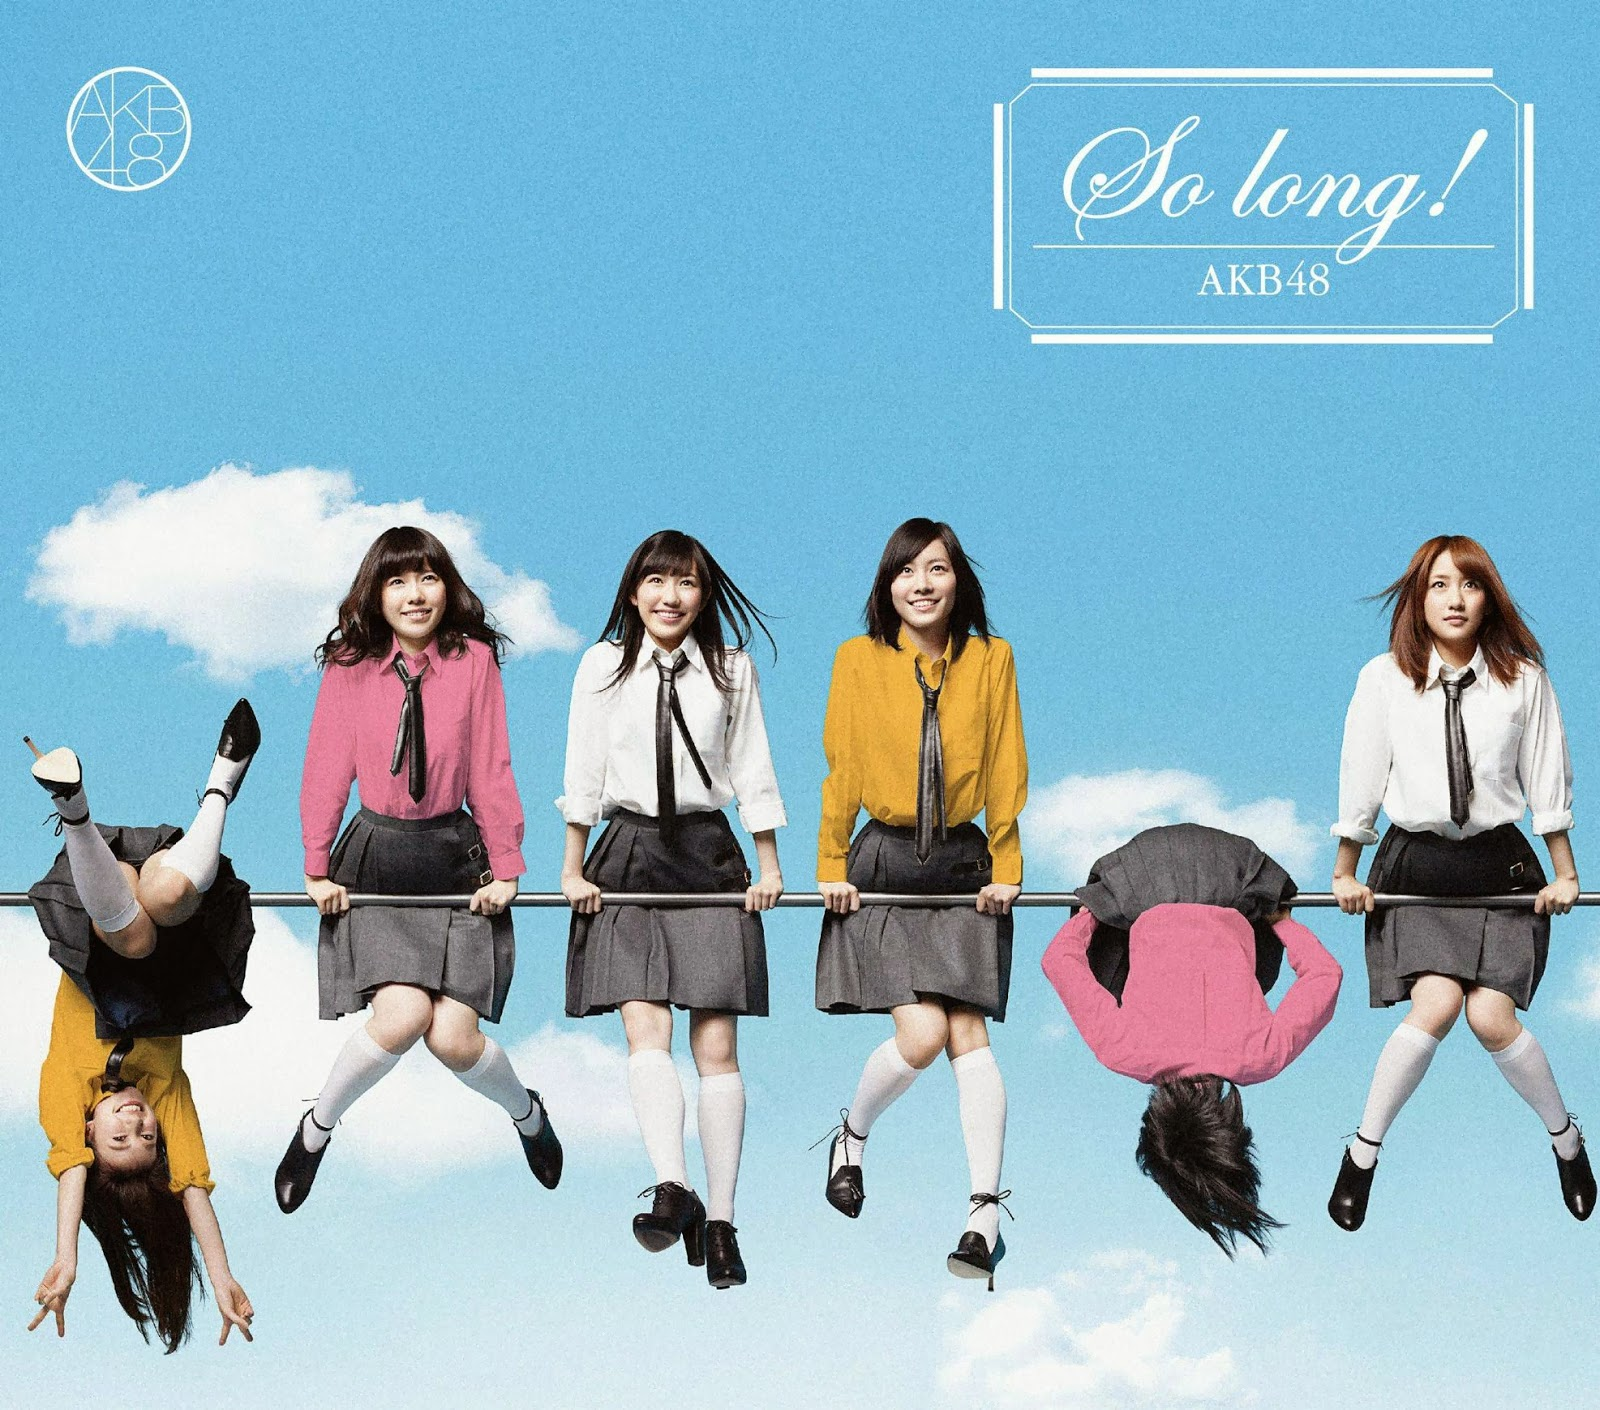 akb48_So_long_typea_limited.jpg (1600×1410)